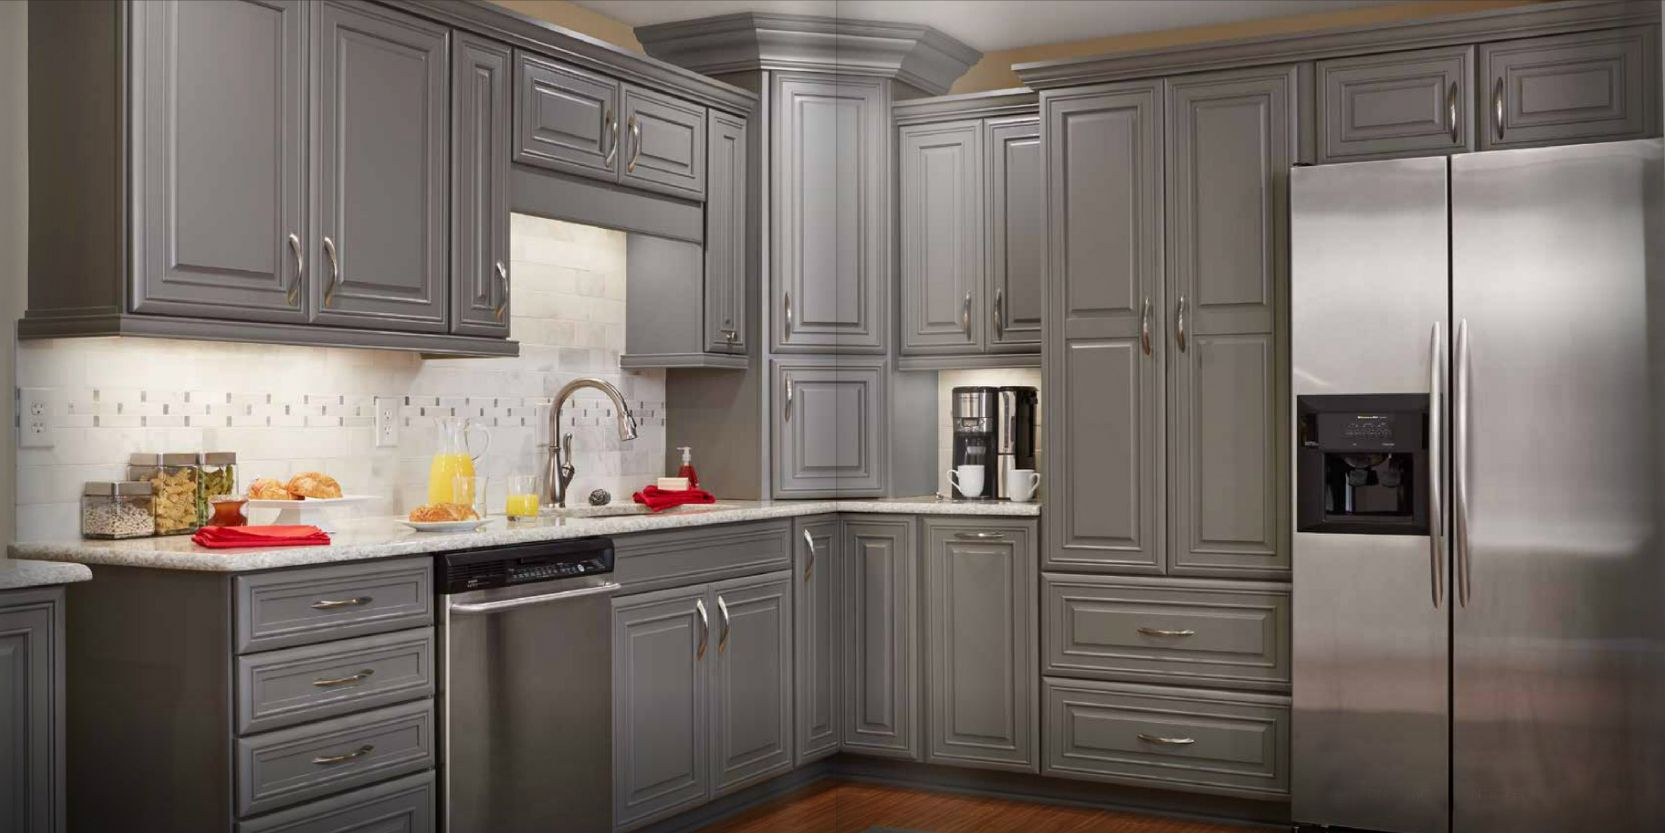 gray stained kitchen cabinets. grey stained kitchen cabinets  Google Search Logan Blvd